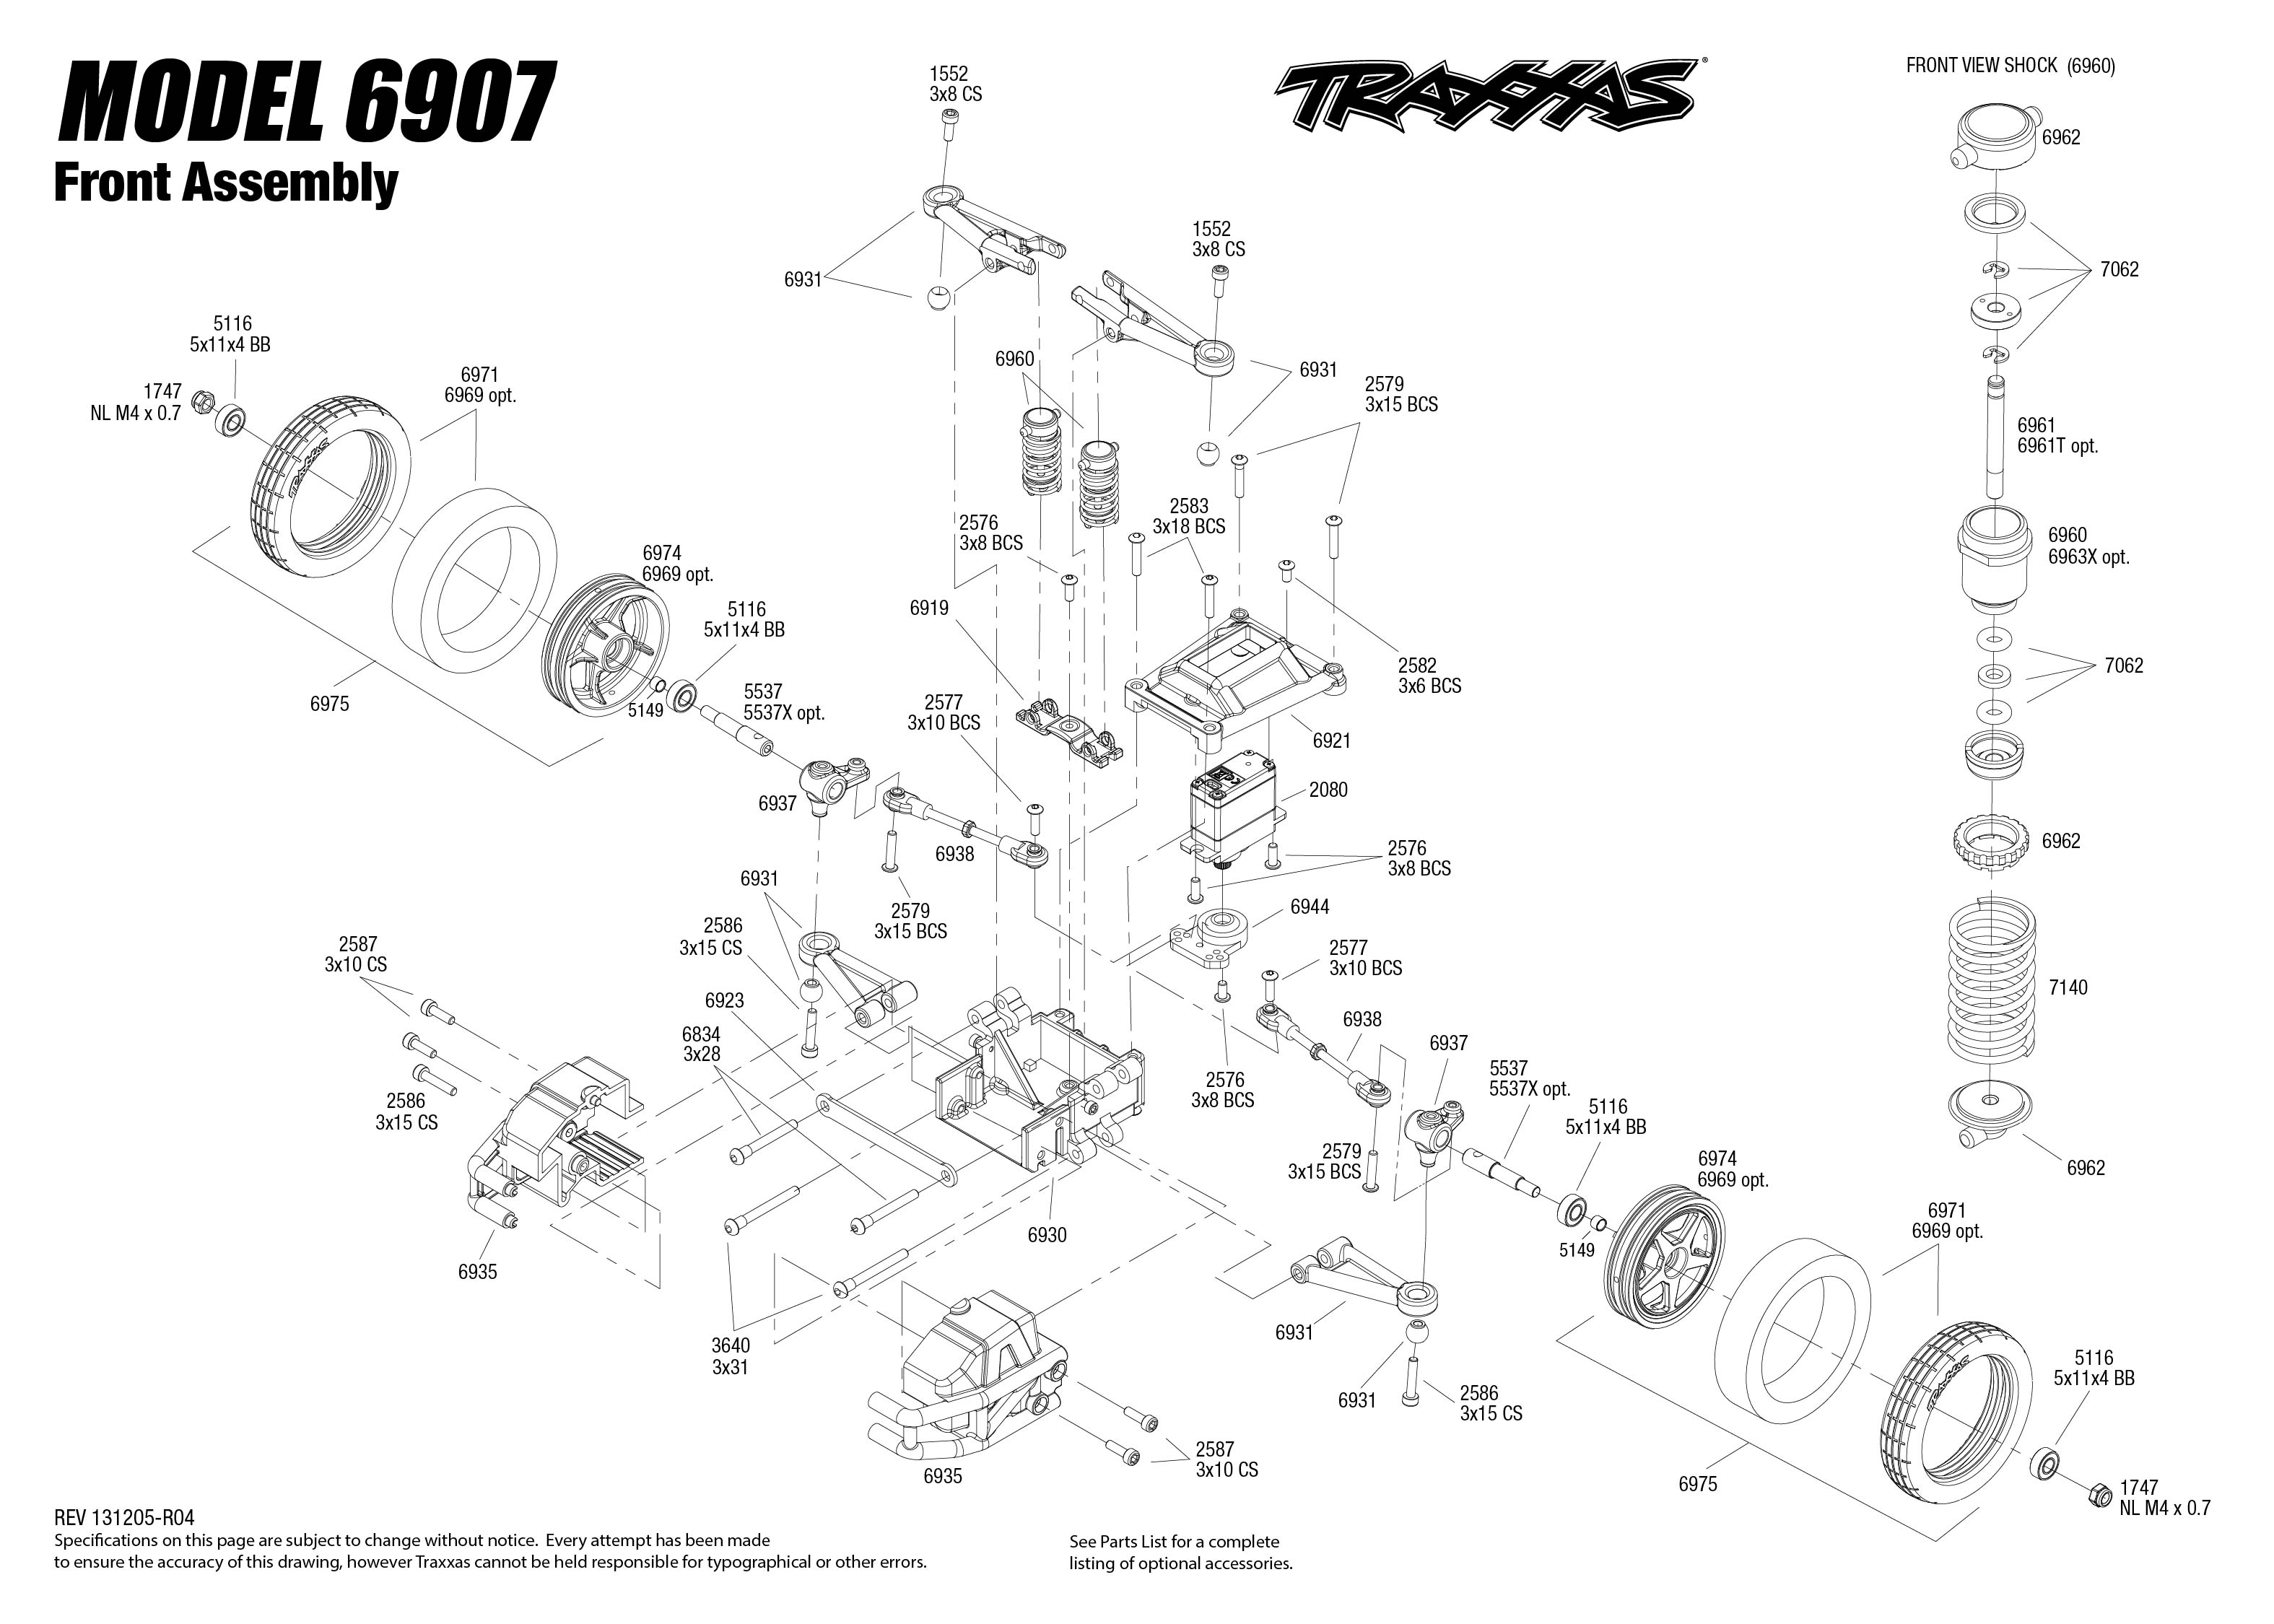 traxxas parts diagram wiring diagram for light switch u2022 rh prestonfarmmotors co traxxas bandit parts manual traxxas bandit parts list